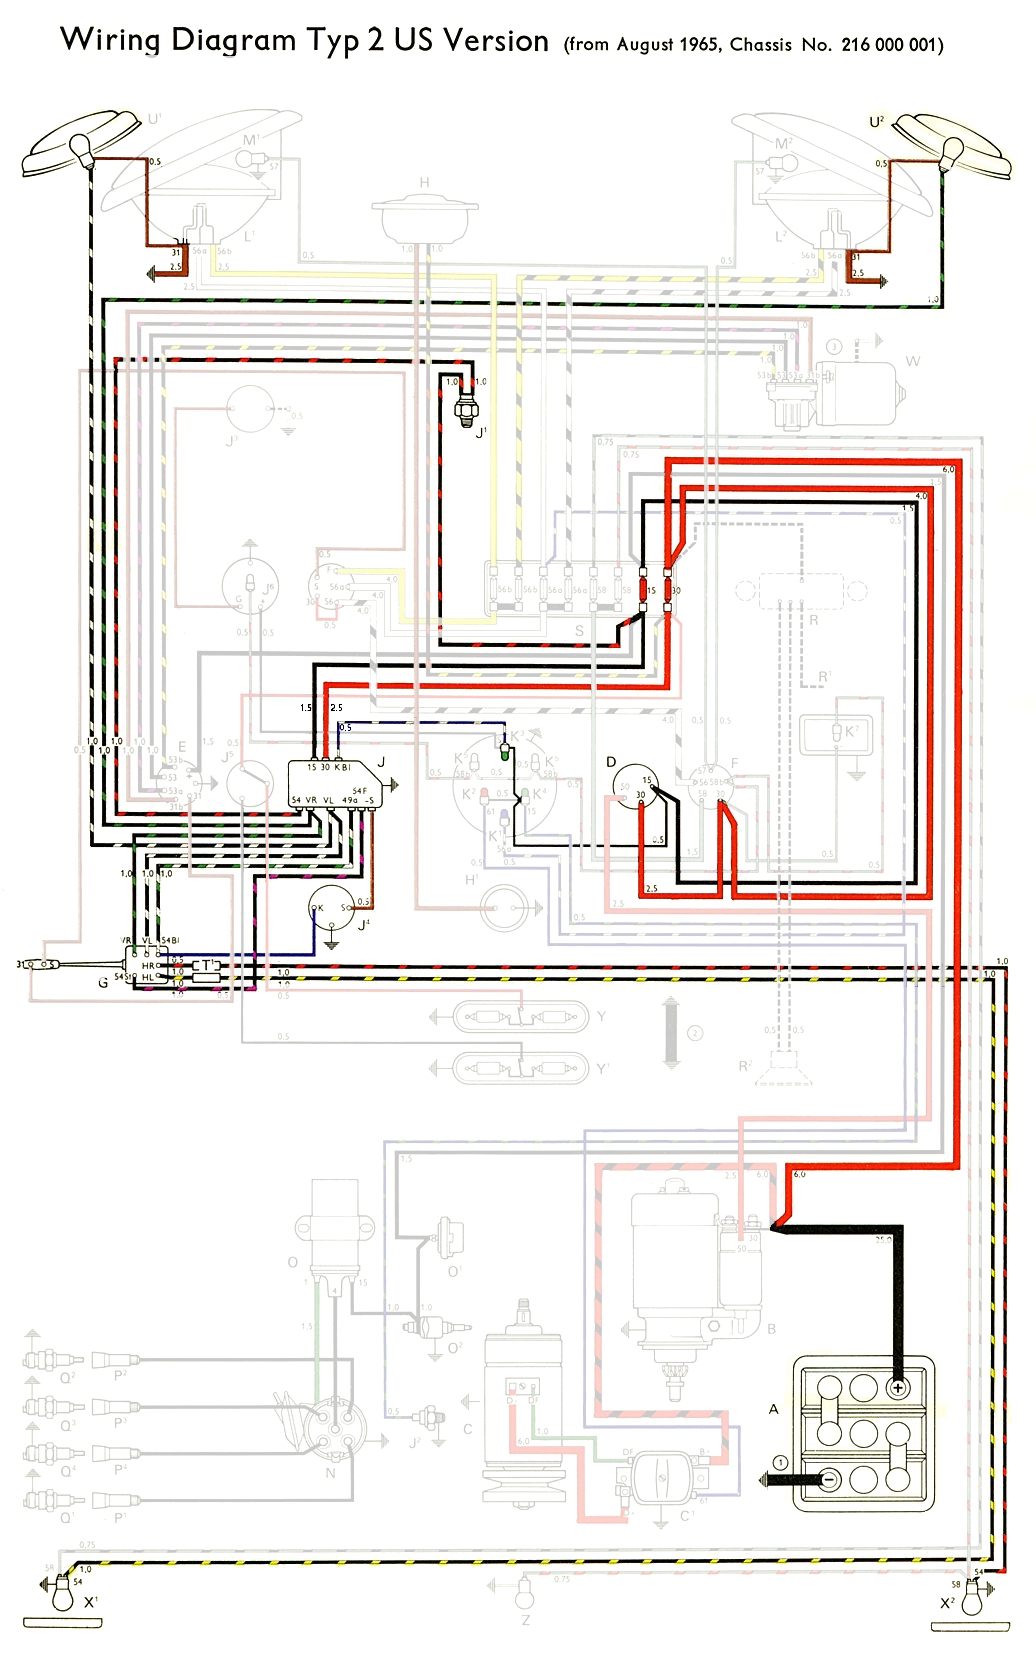 Type 2 Wiring Diagrams Diagram Of Turn Signal Signals Highlight